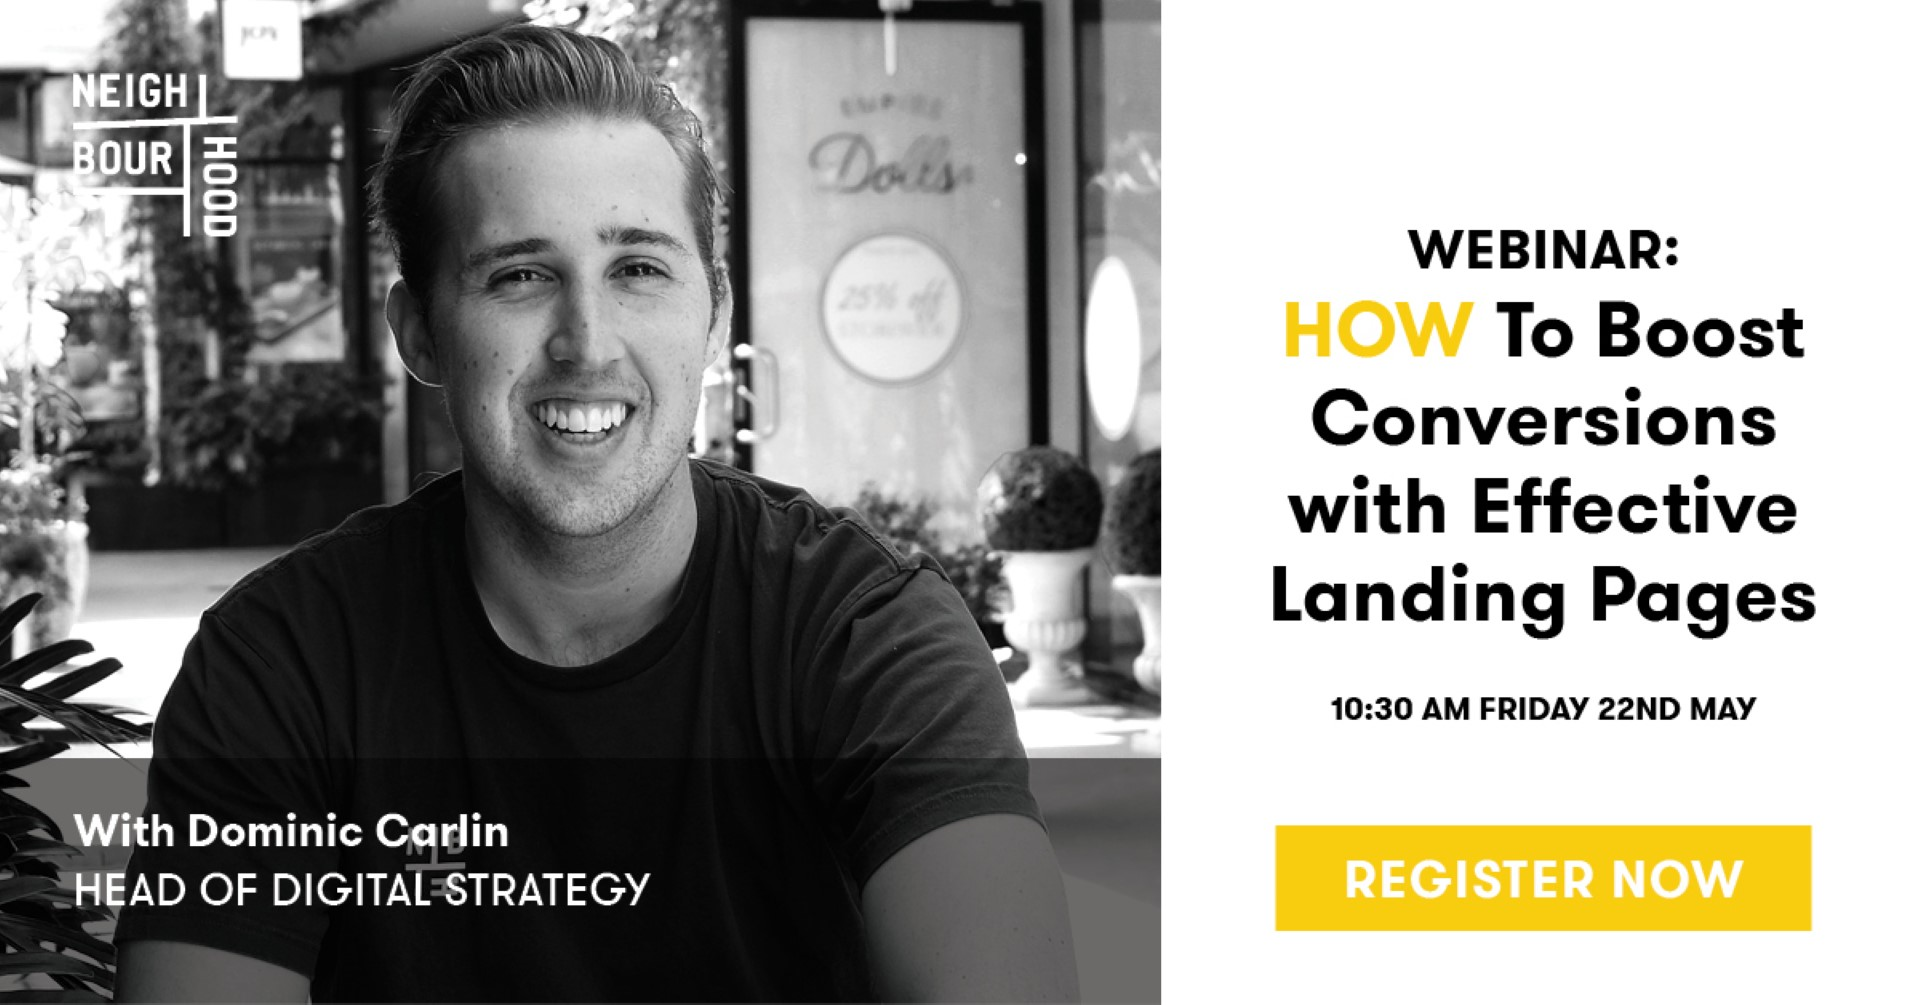 How to Boost Conversions with Effective Landing Pages